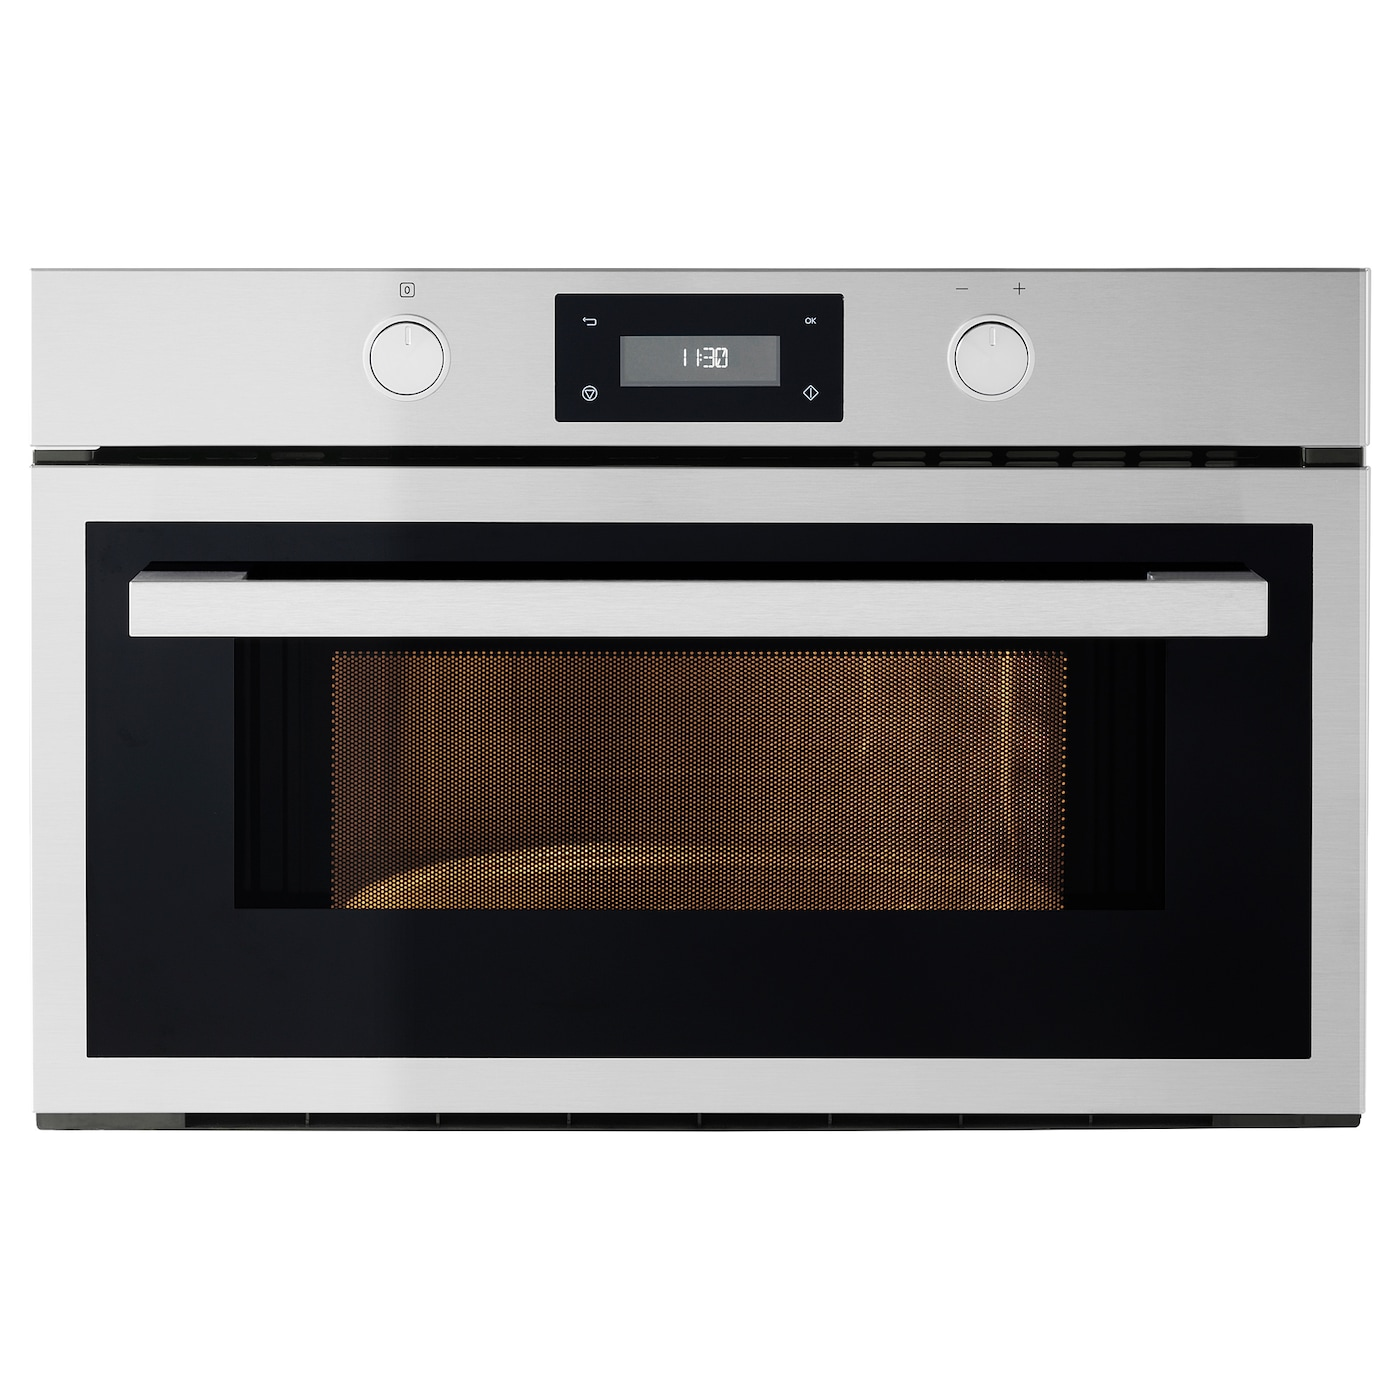 IKEA ANRÄTTA microwave oven 5 year guarantee. Read about the terms in the guarantee brochure.